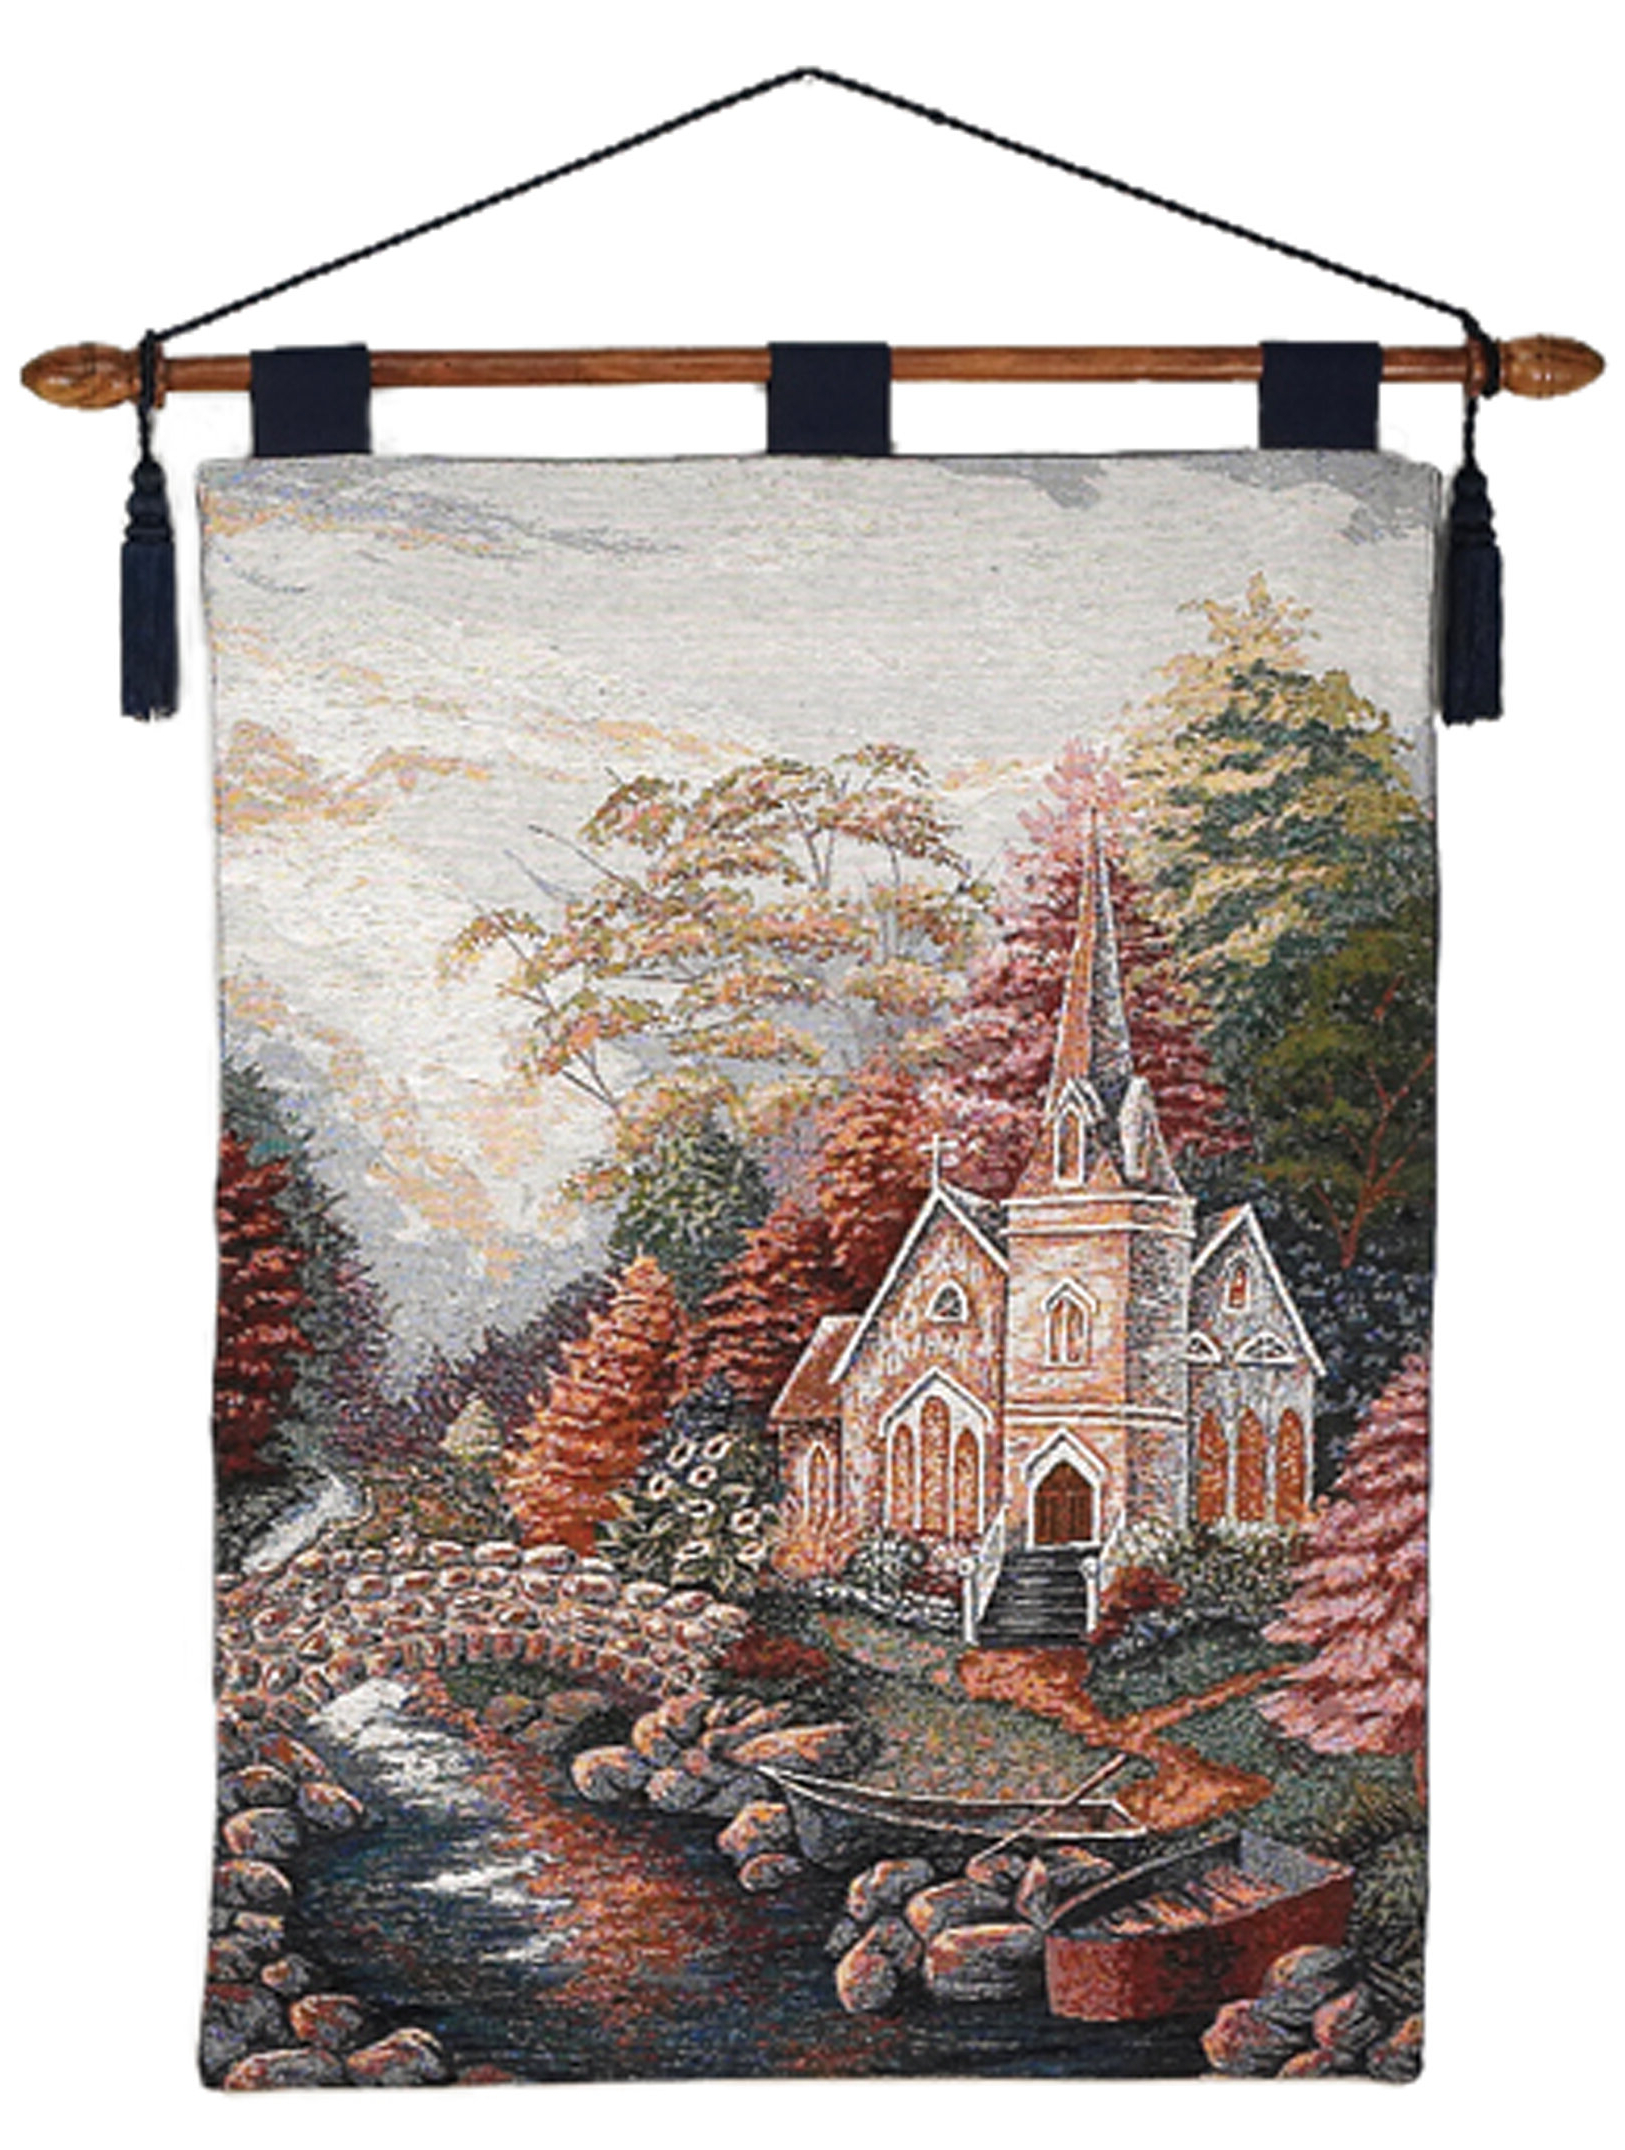 Church Wall Hanging Intended For Well Known Blended Fabric Autumn Tranquility Verse Wall Hangings (View 4 of 20)